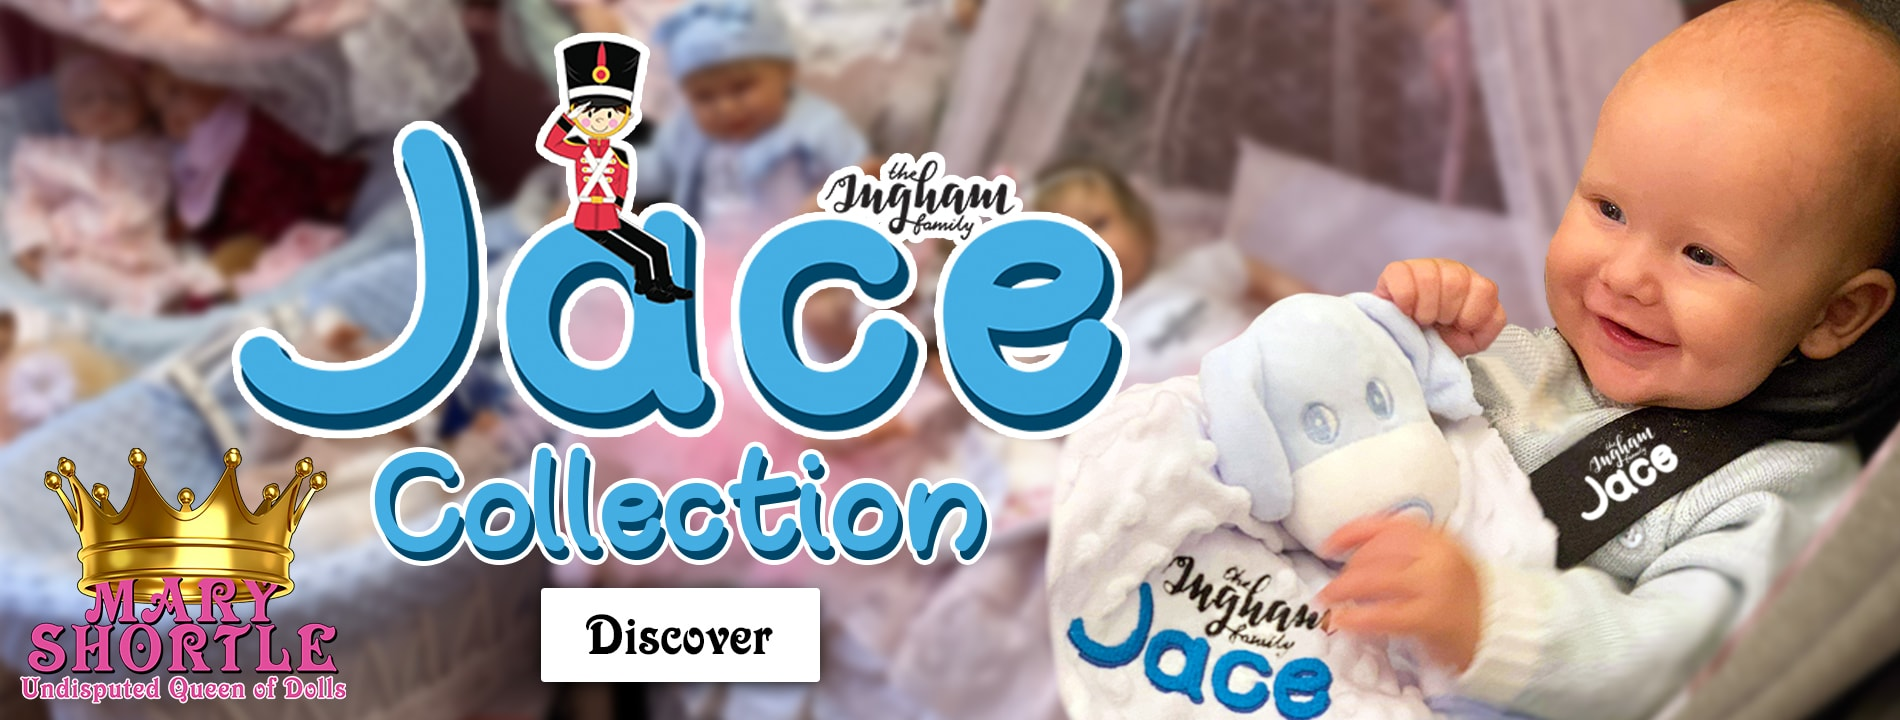 Jace Collection Slider